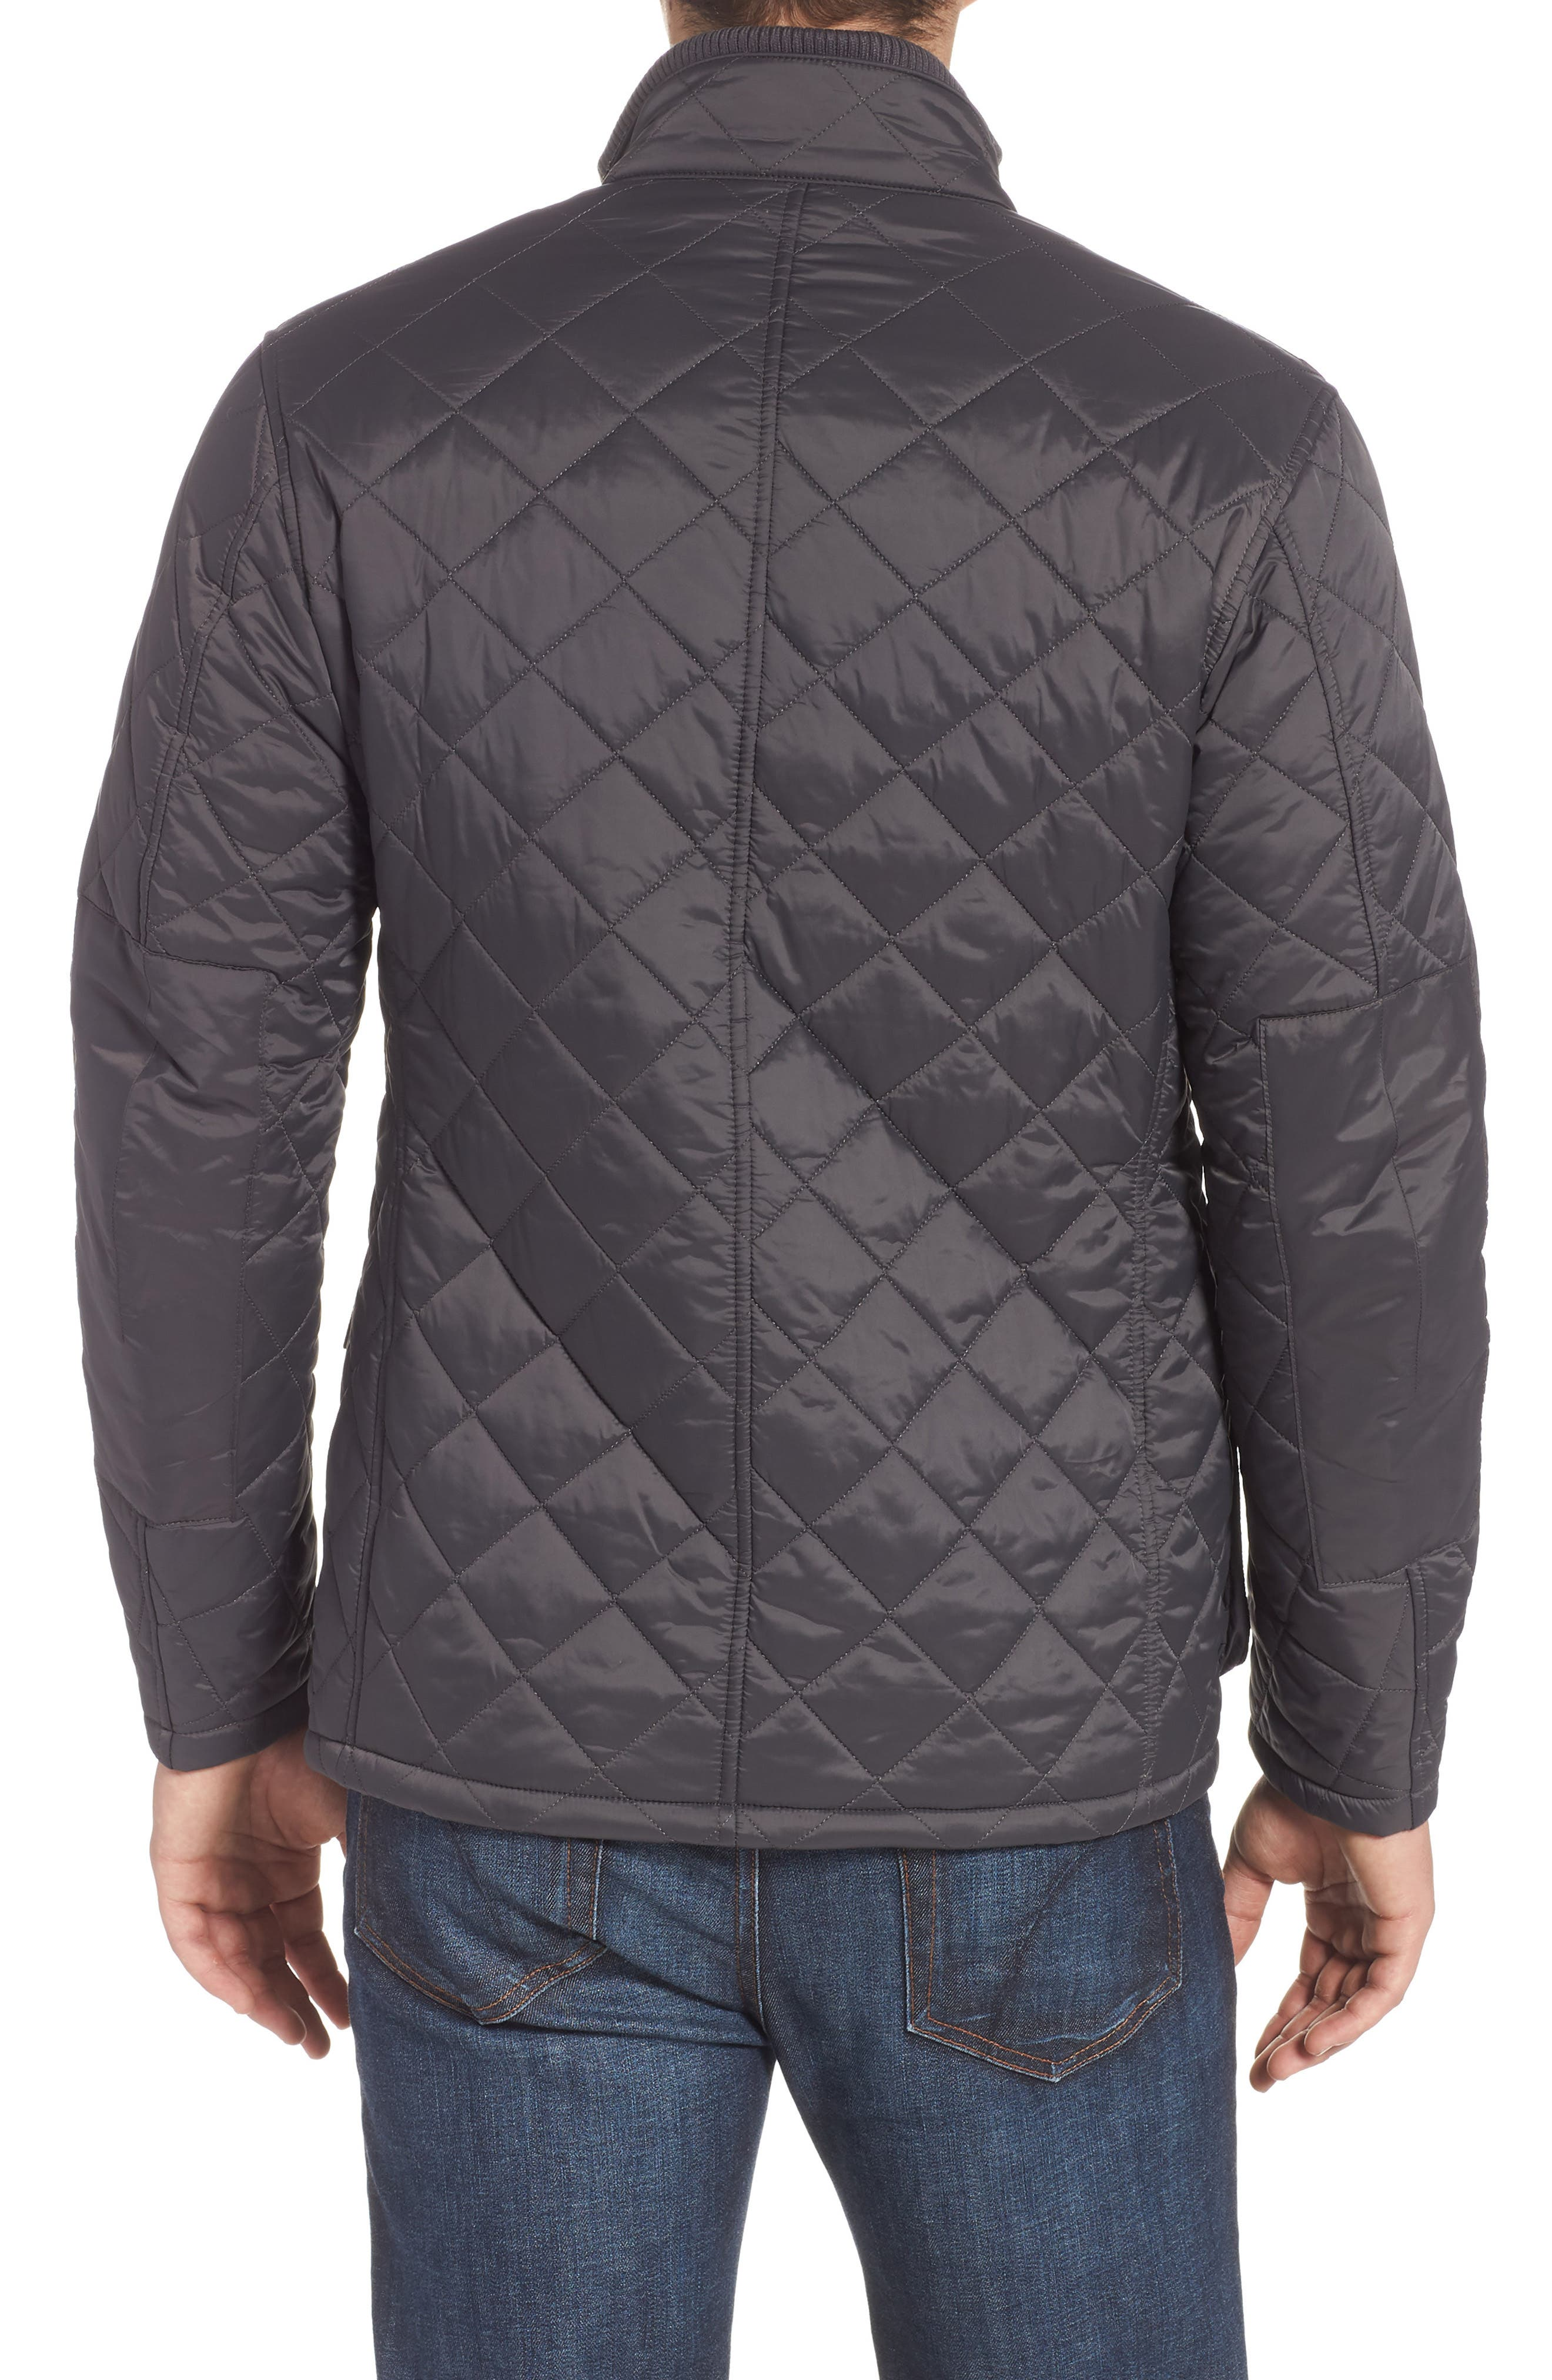 BARBOUR, International Windshield Quilted Jacket, Alternate thumbnail 2, color, CHARCOAL